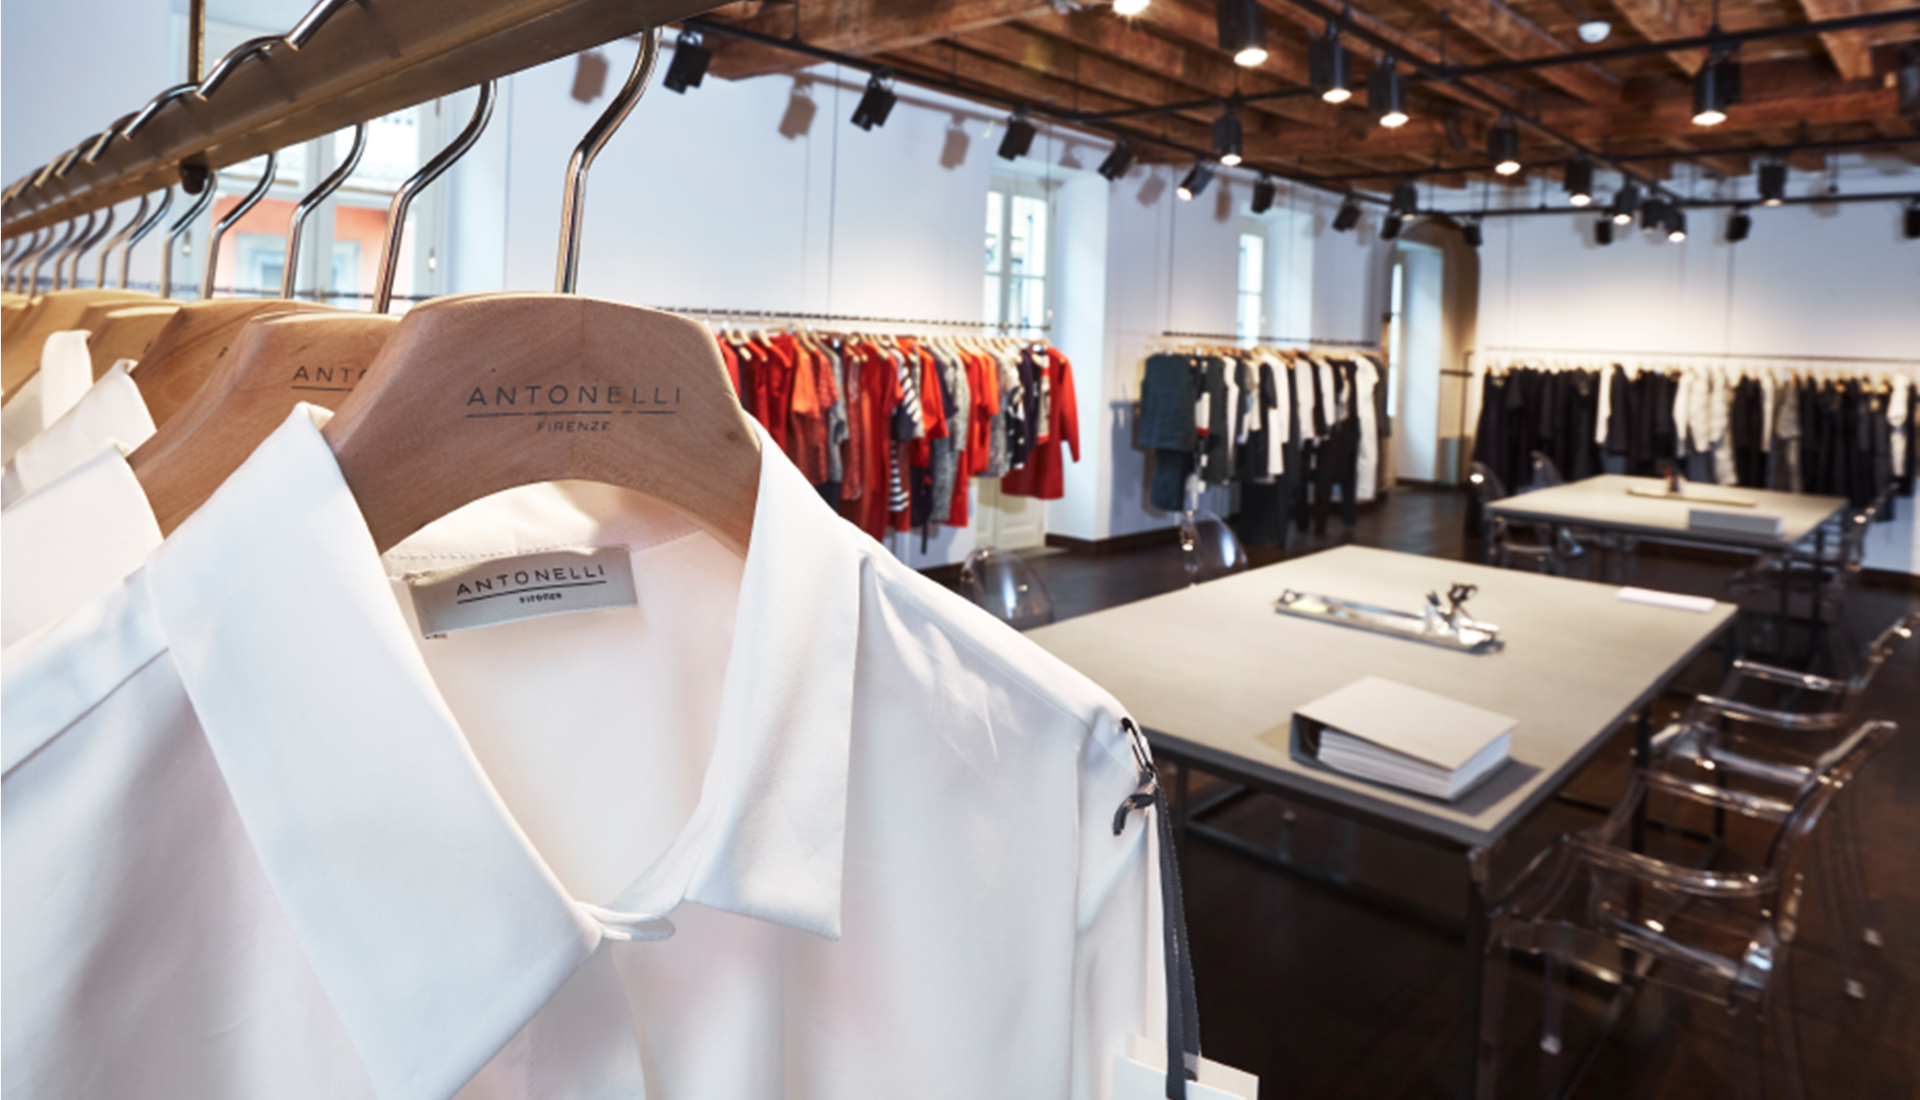 Showroom Antonelli Firenze in Via Tortona 21 - Milano, immagine 1